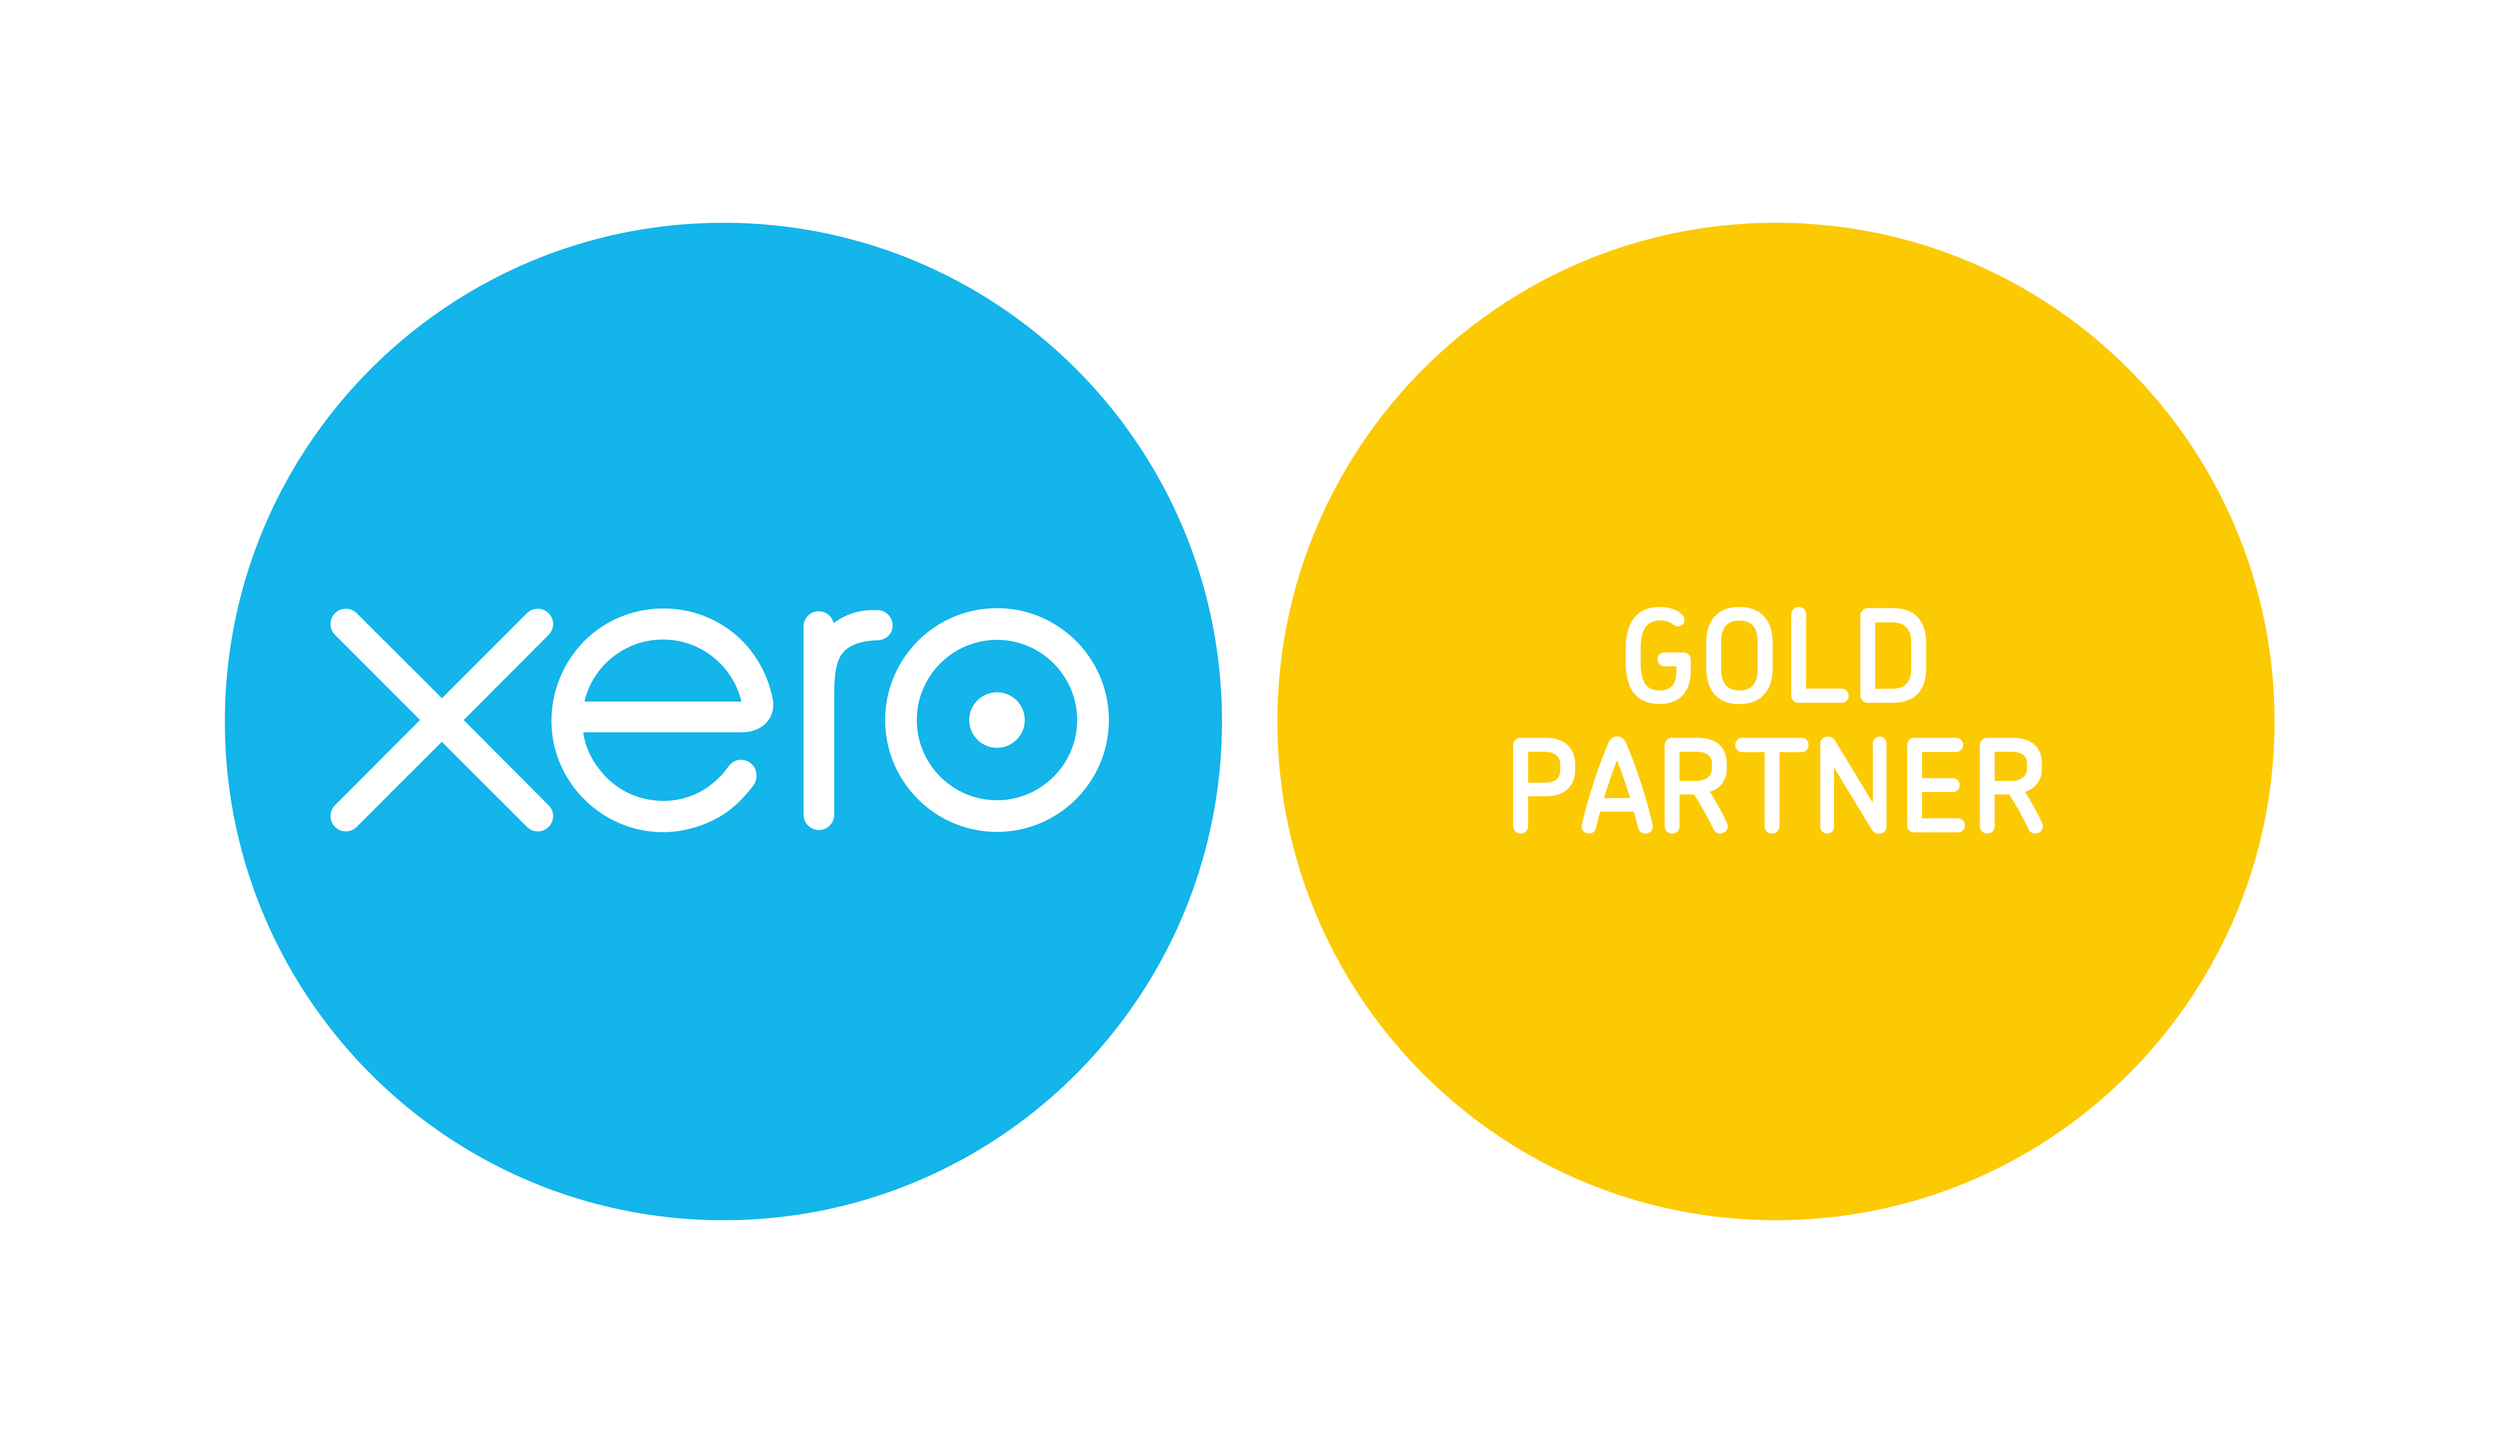 Cloud based Software Xero - Intuitive, beautiful and liberating online accounting software designed for small businesses. We recommend and support Xero because it makes working together so easy.Find out for yourself why one of our clients has said